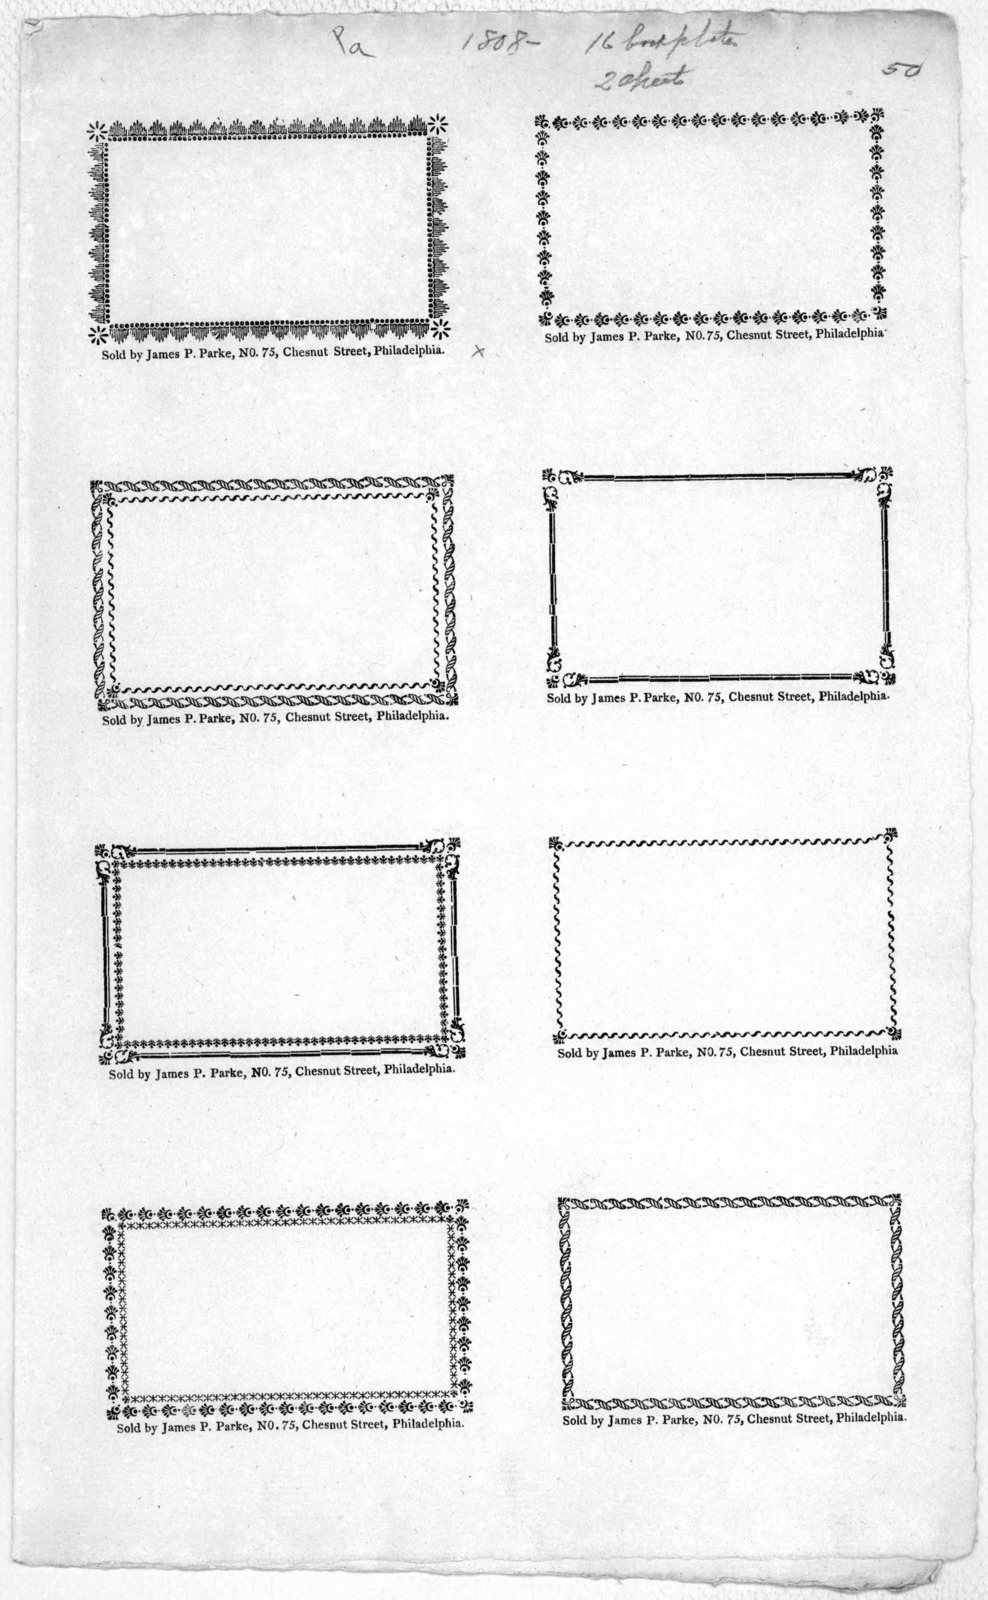 [Blank book plates sold by James P. Parke. No. 75 Chestnut Street 8 to a page].